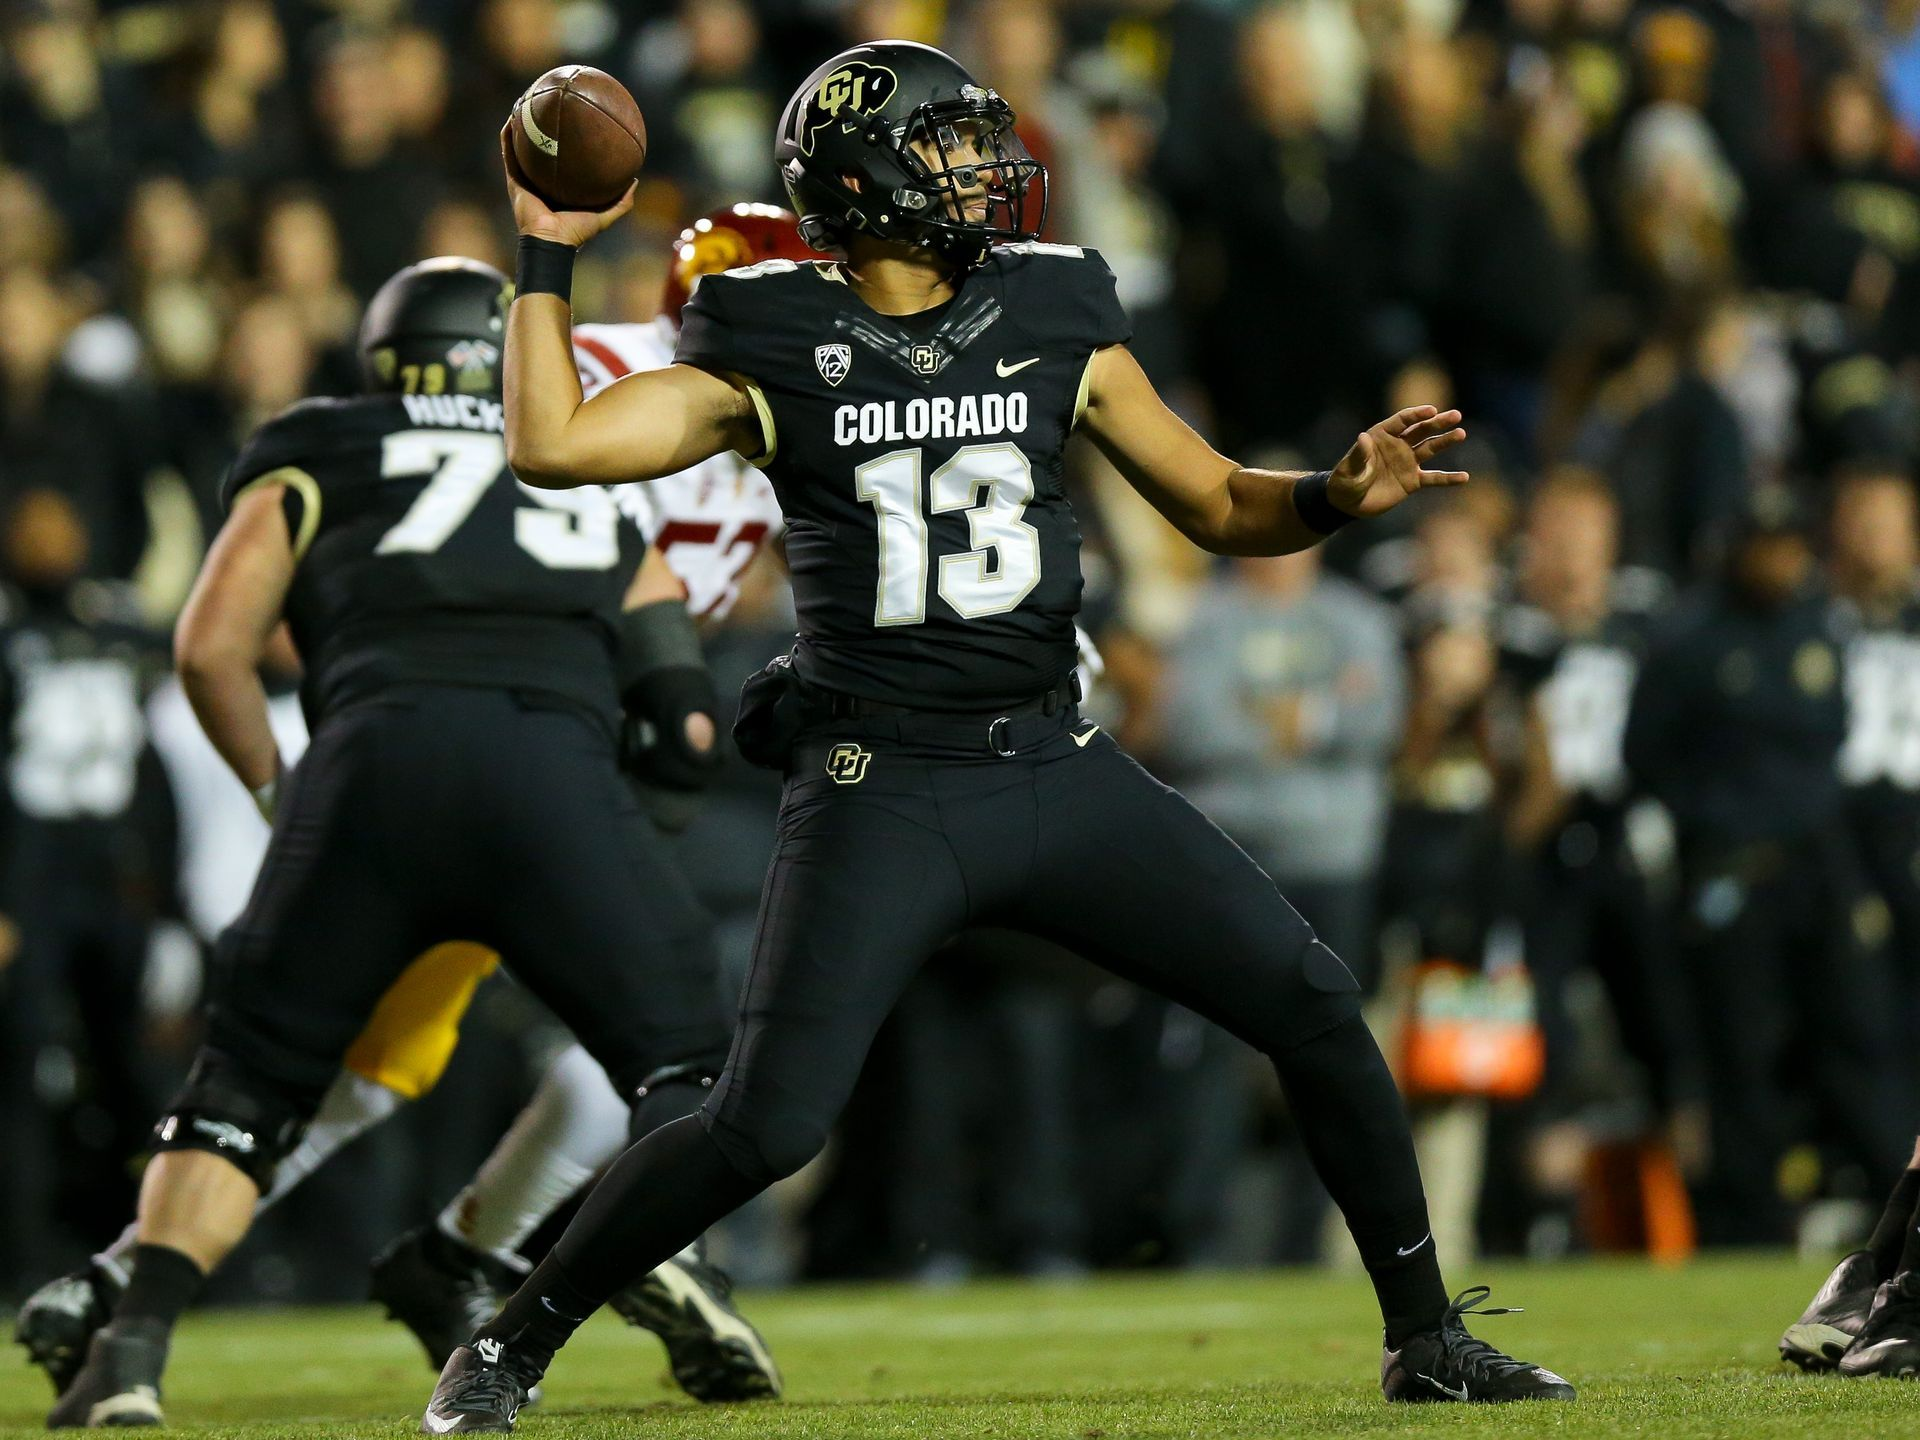 Quarterback Sefo Liufau 13 Of The Colorado Buffaloes Football